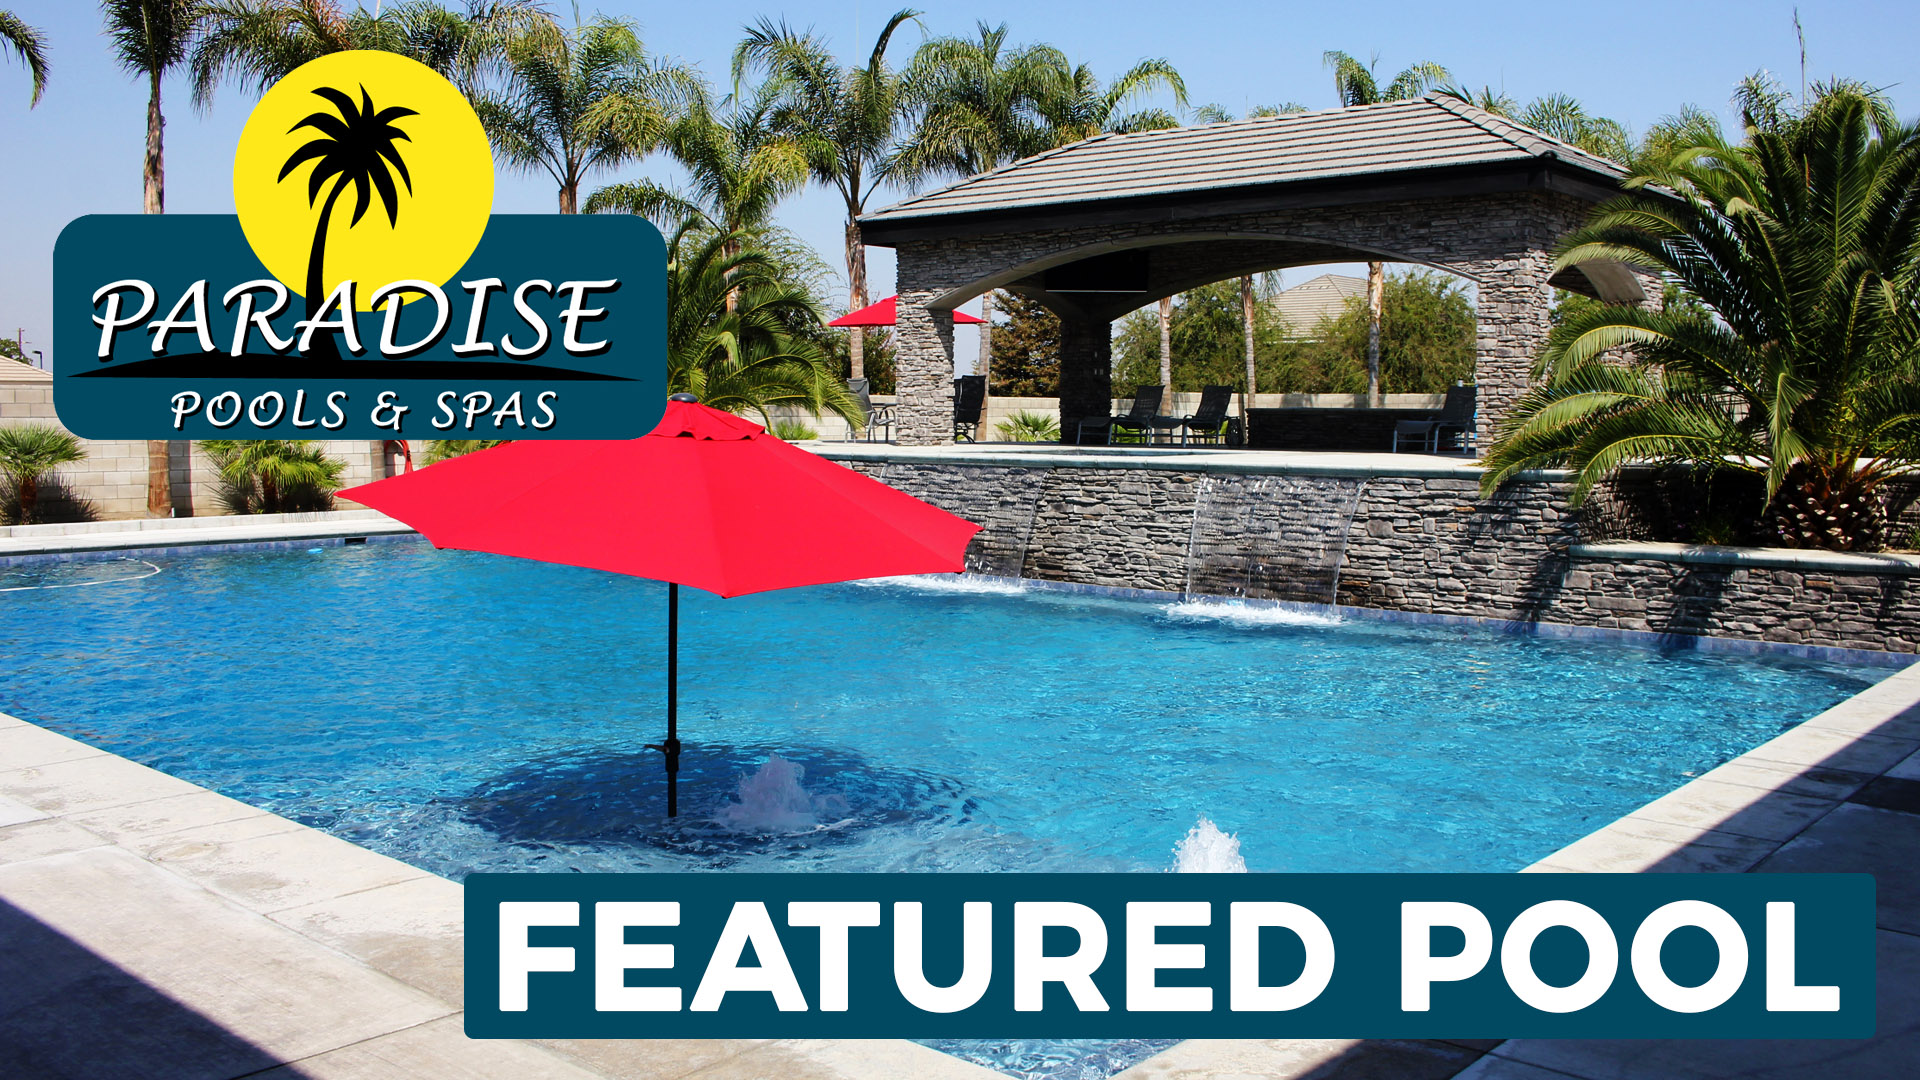 Massive, deep swimming pool with water features, spa and red umbrellas built by Paradise Pools & Spas.